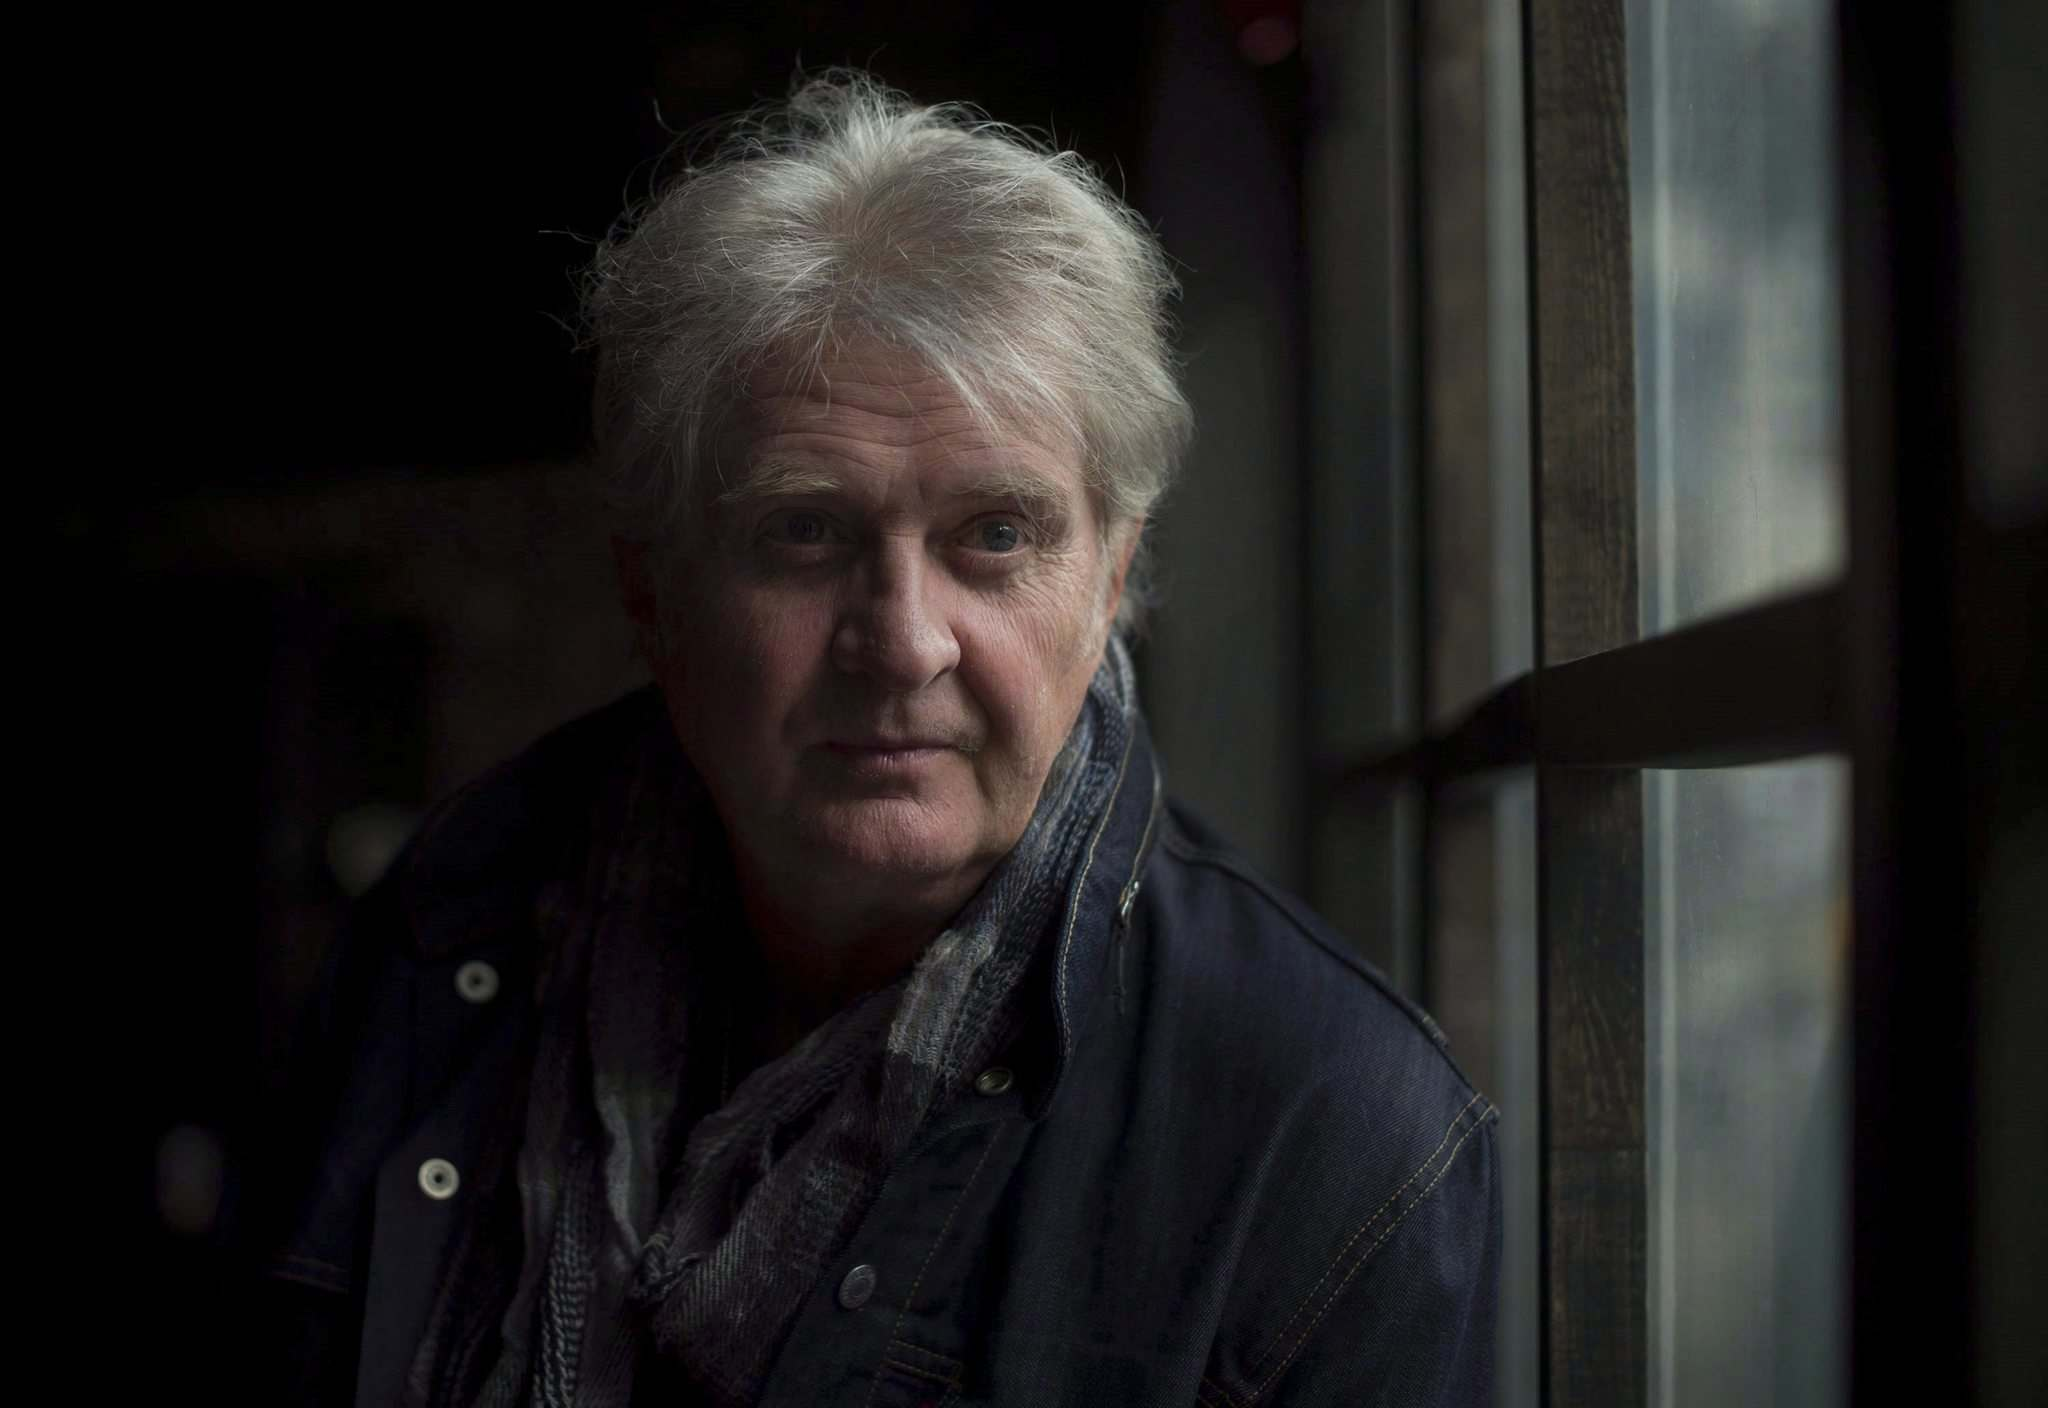 Darren Calabrese / The Canadian Press Files</p><p>Musician Tom Cochrane will co-headline Winnipeg's Classic RockFest with Kim Mitchell on Aug. 23 at Shaw Park.</p></p>